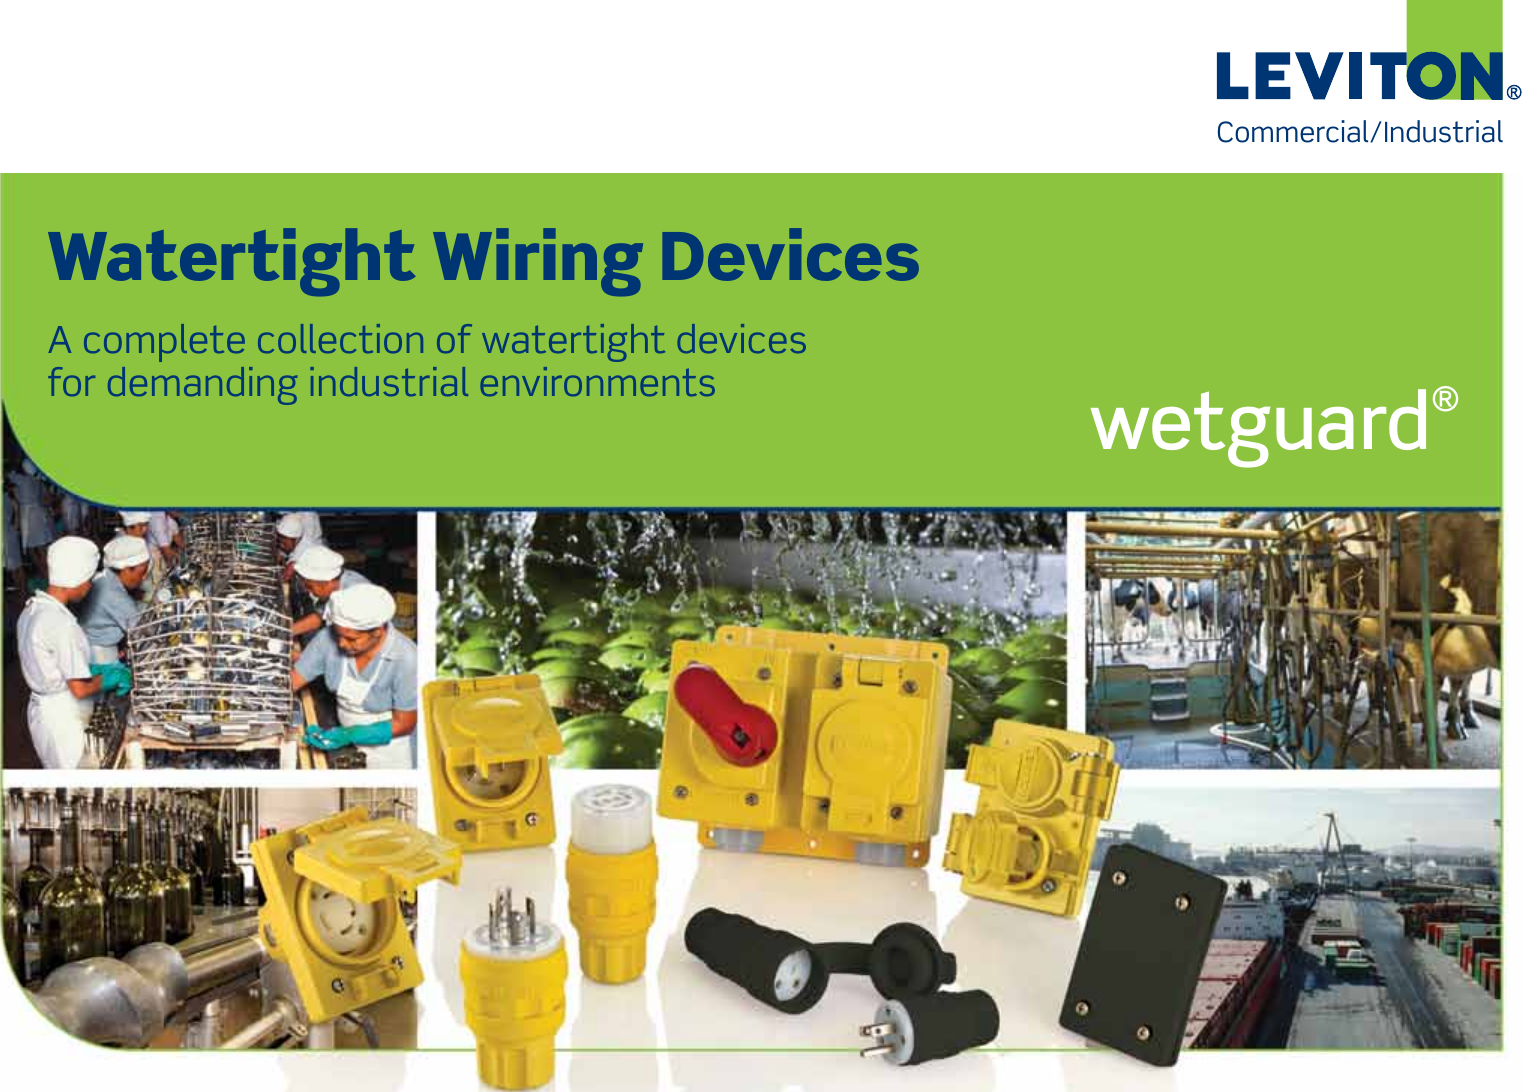 Leviton Watertight Wiring Devices 101721 Catalog Commercial And Industrial